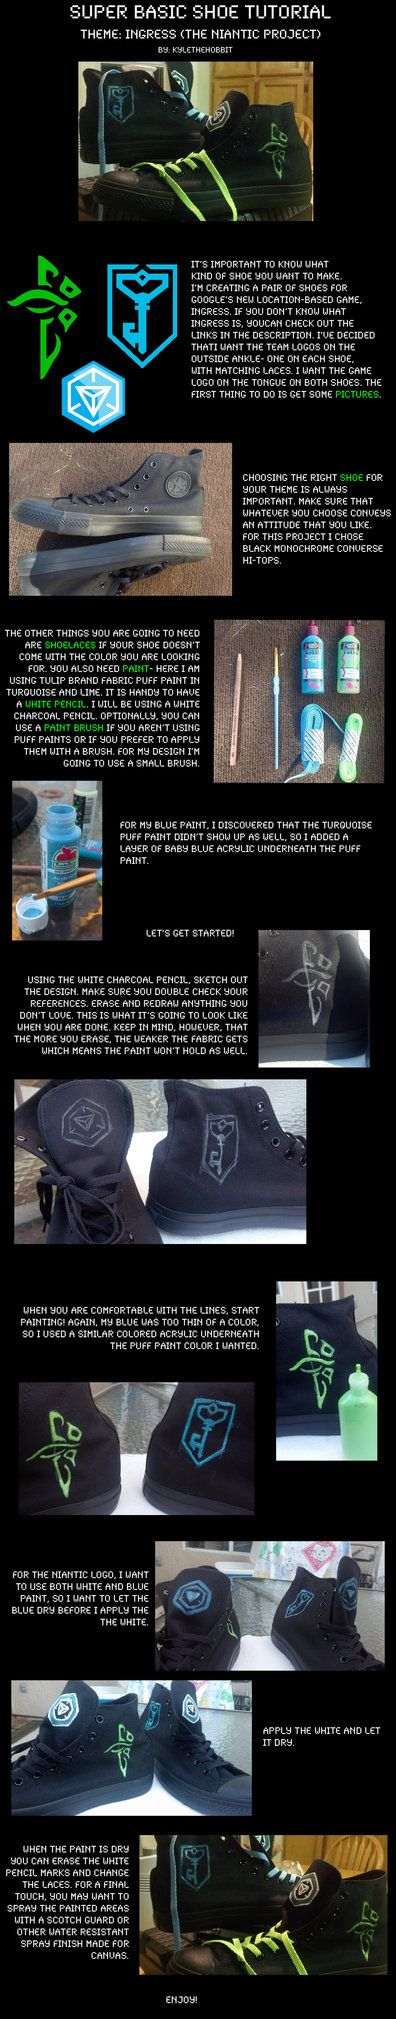 Ingress Shoe Tutorial by KyleTheHobbit on DeviantArt